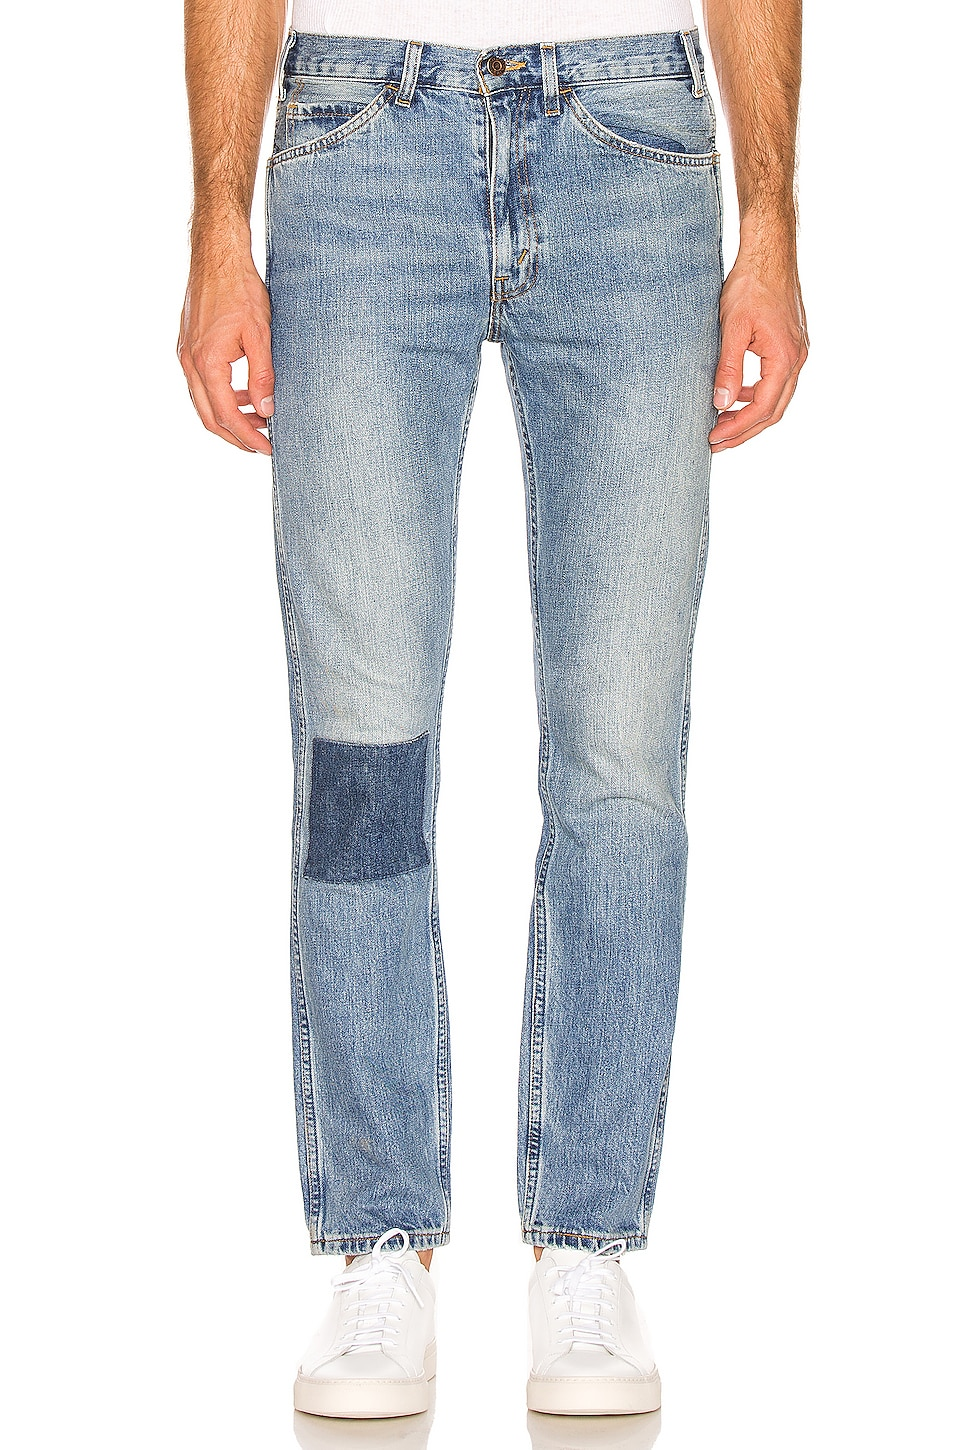 LEVI'S Vintage Clothing 1969 606 Jeans in Skywriter